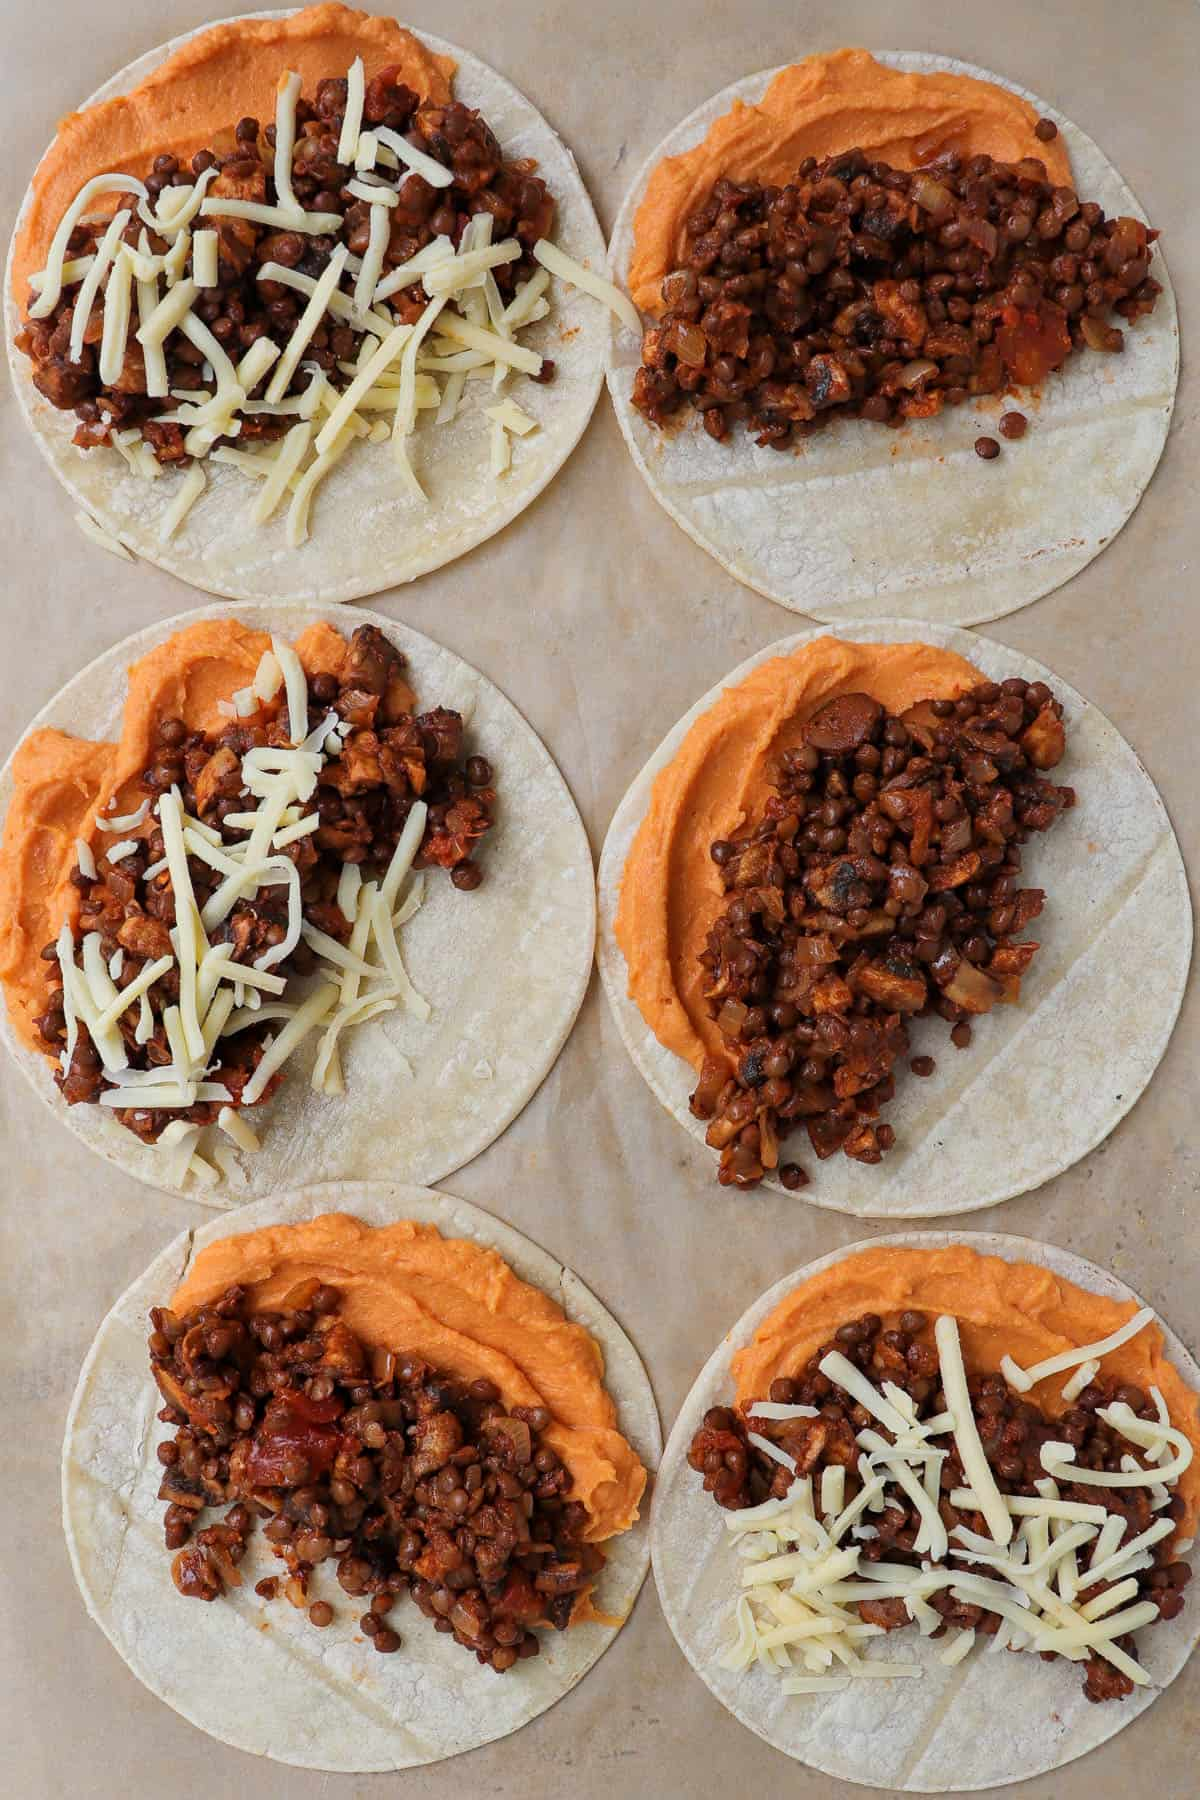 Tortillas topped with sweet potato mash, lentil filling and grated cheese.